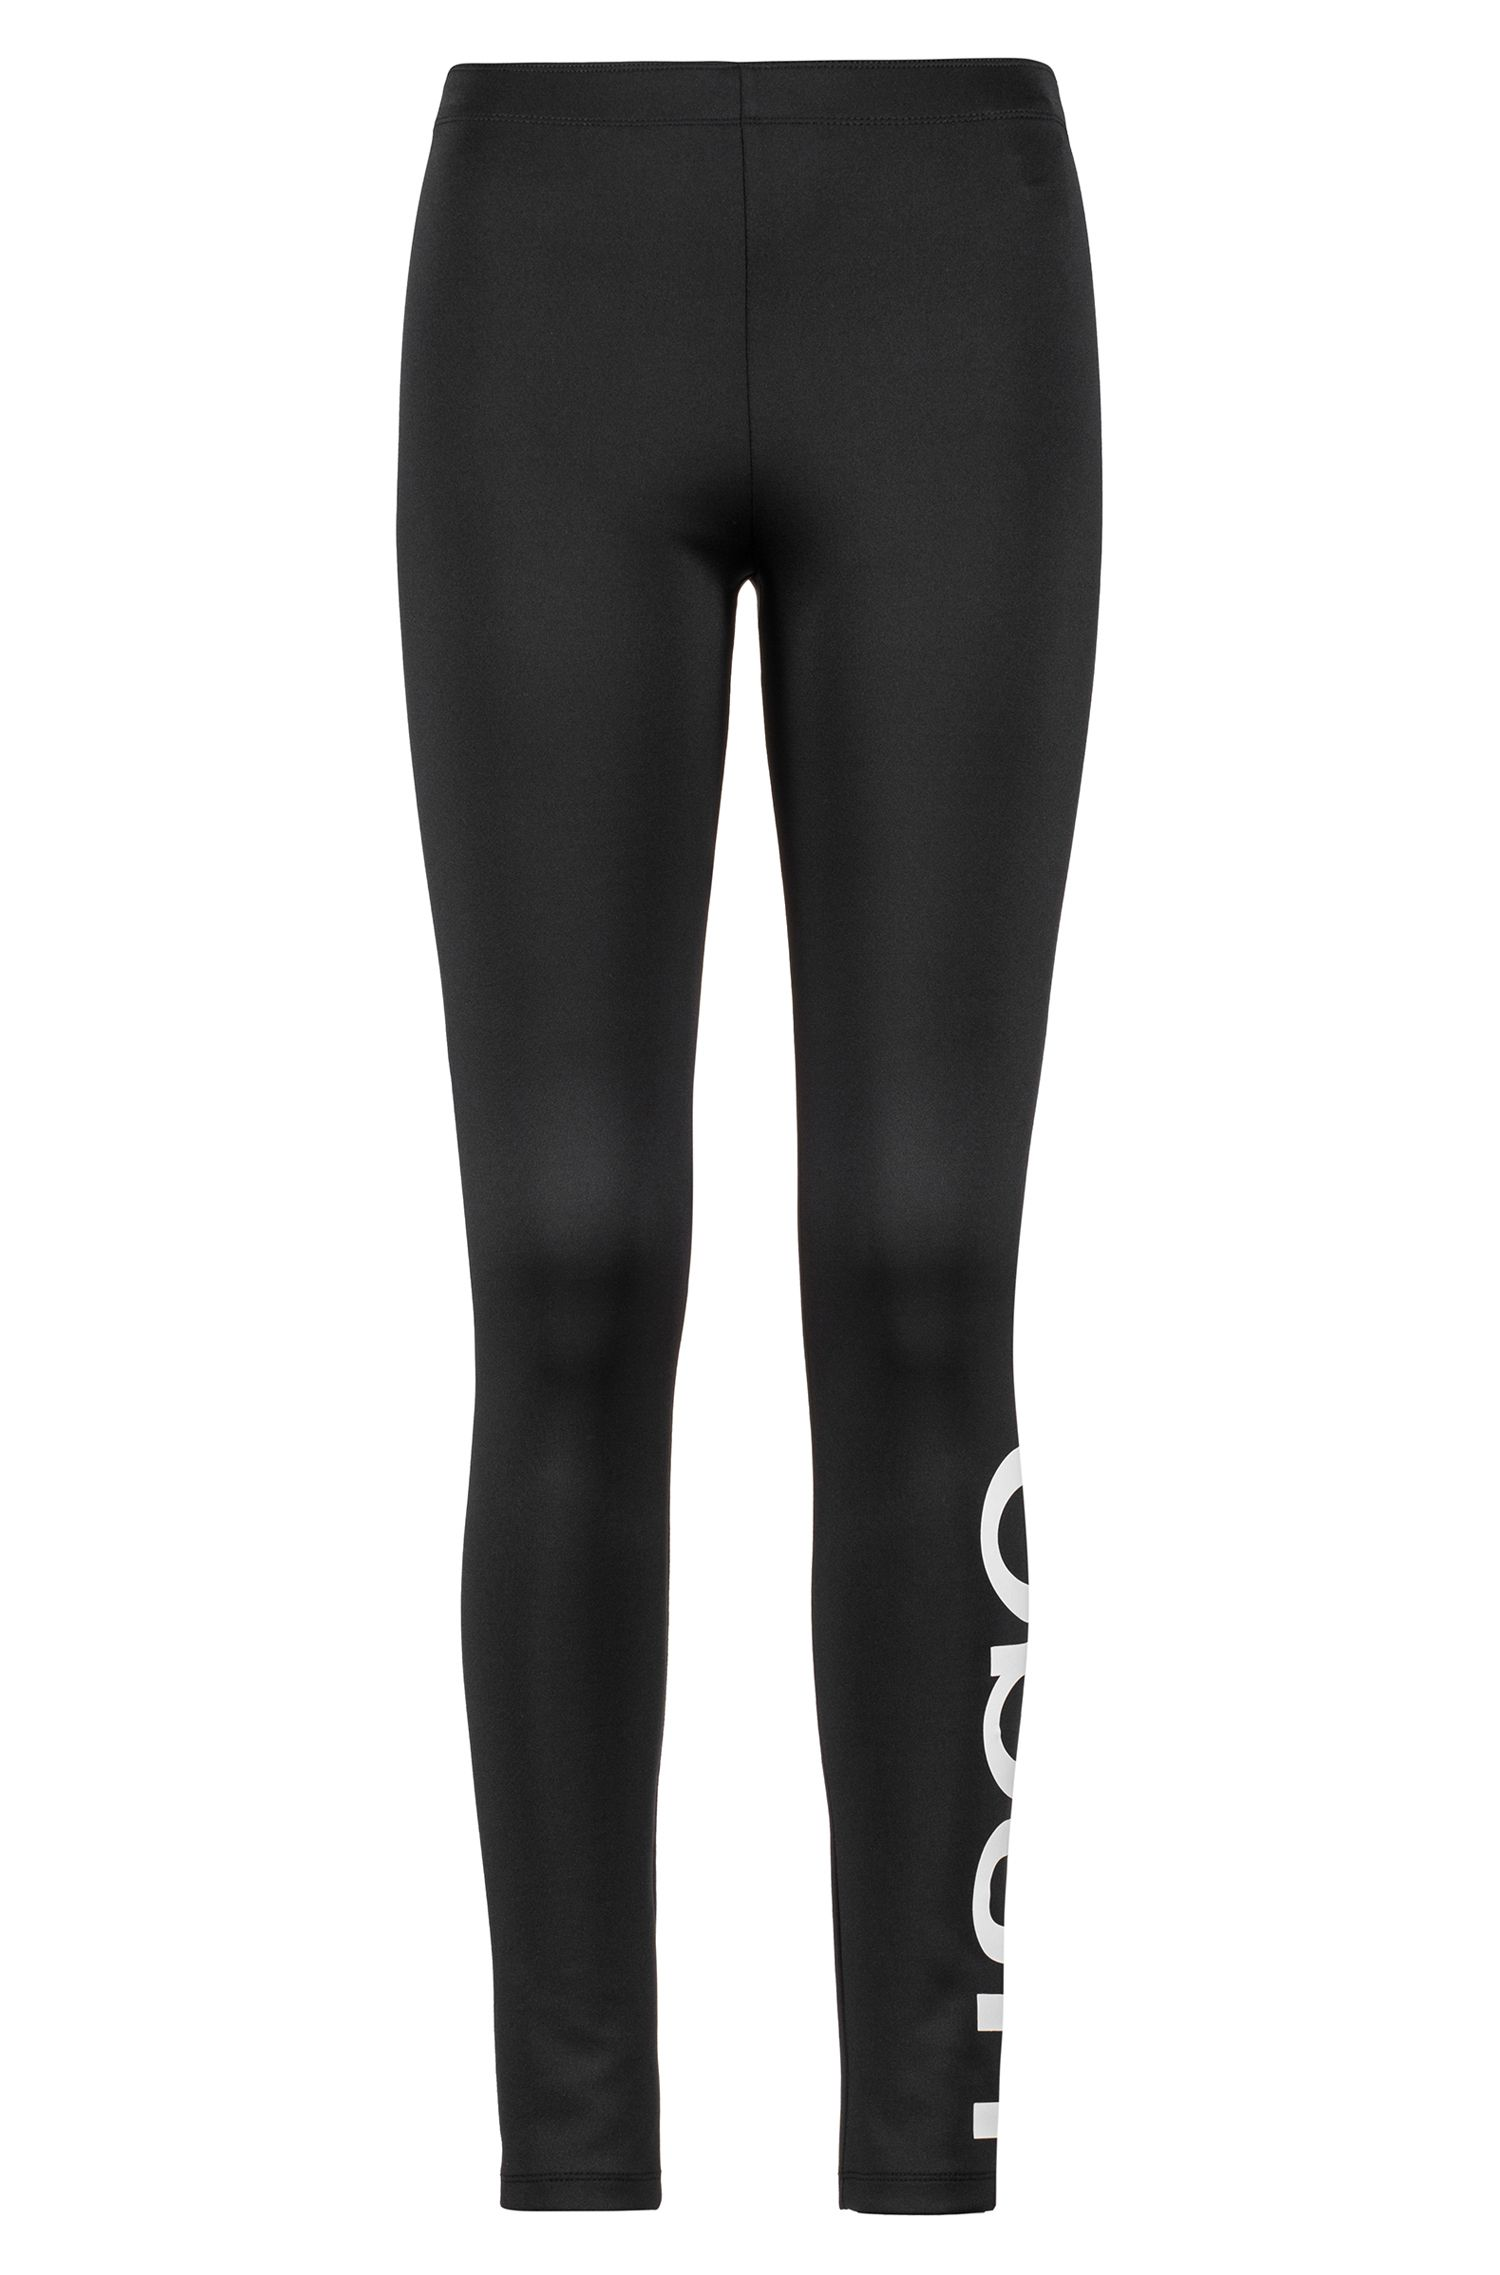 Extra-slim-fit logo pants in technical stretch fabric, Black